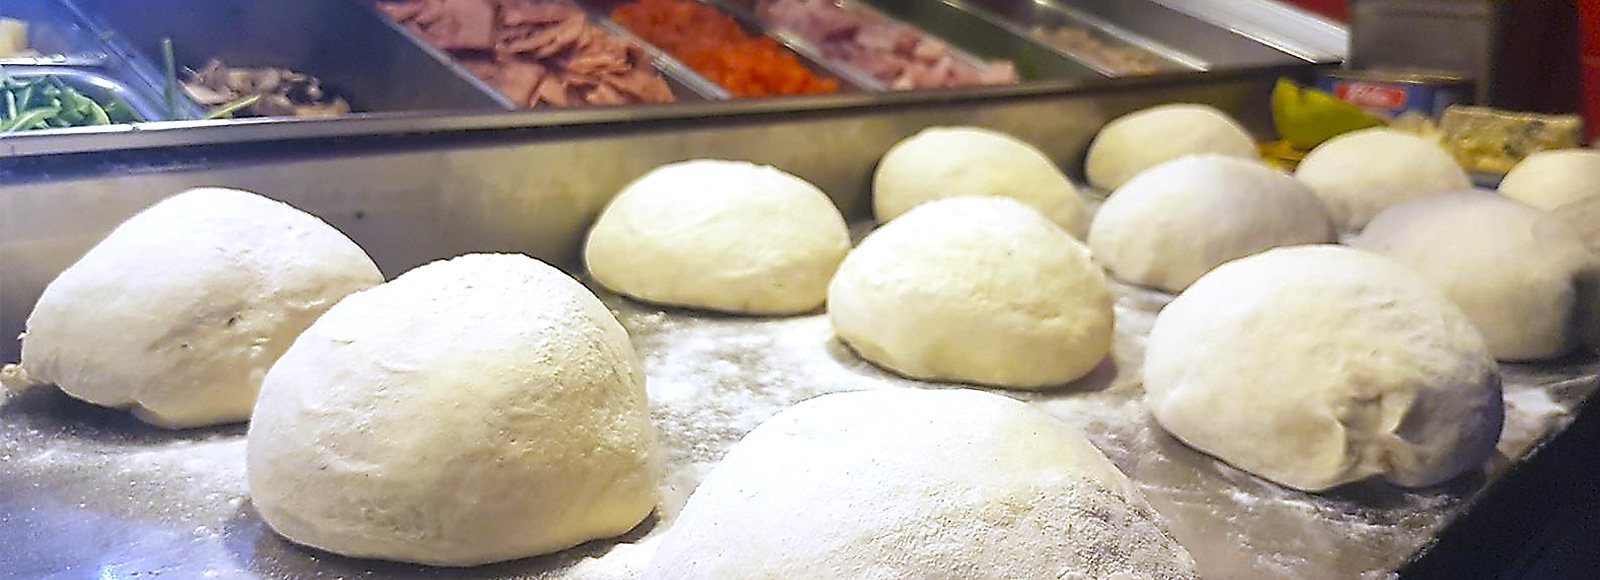 dough-slider